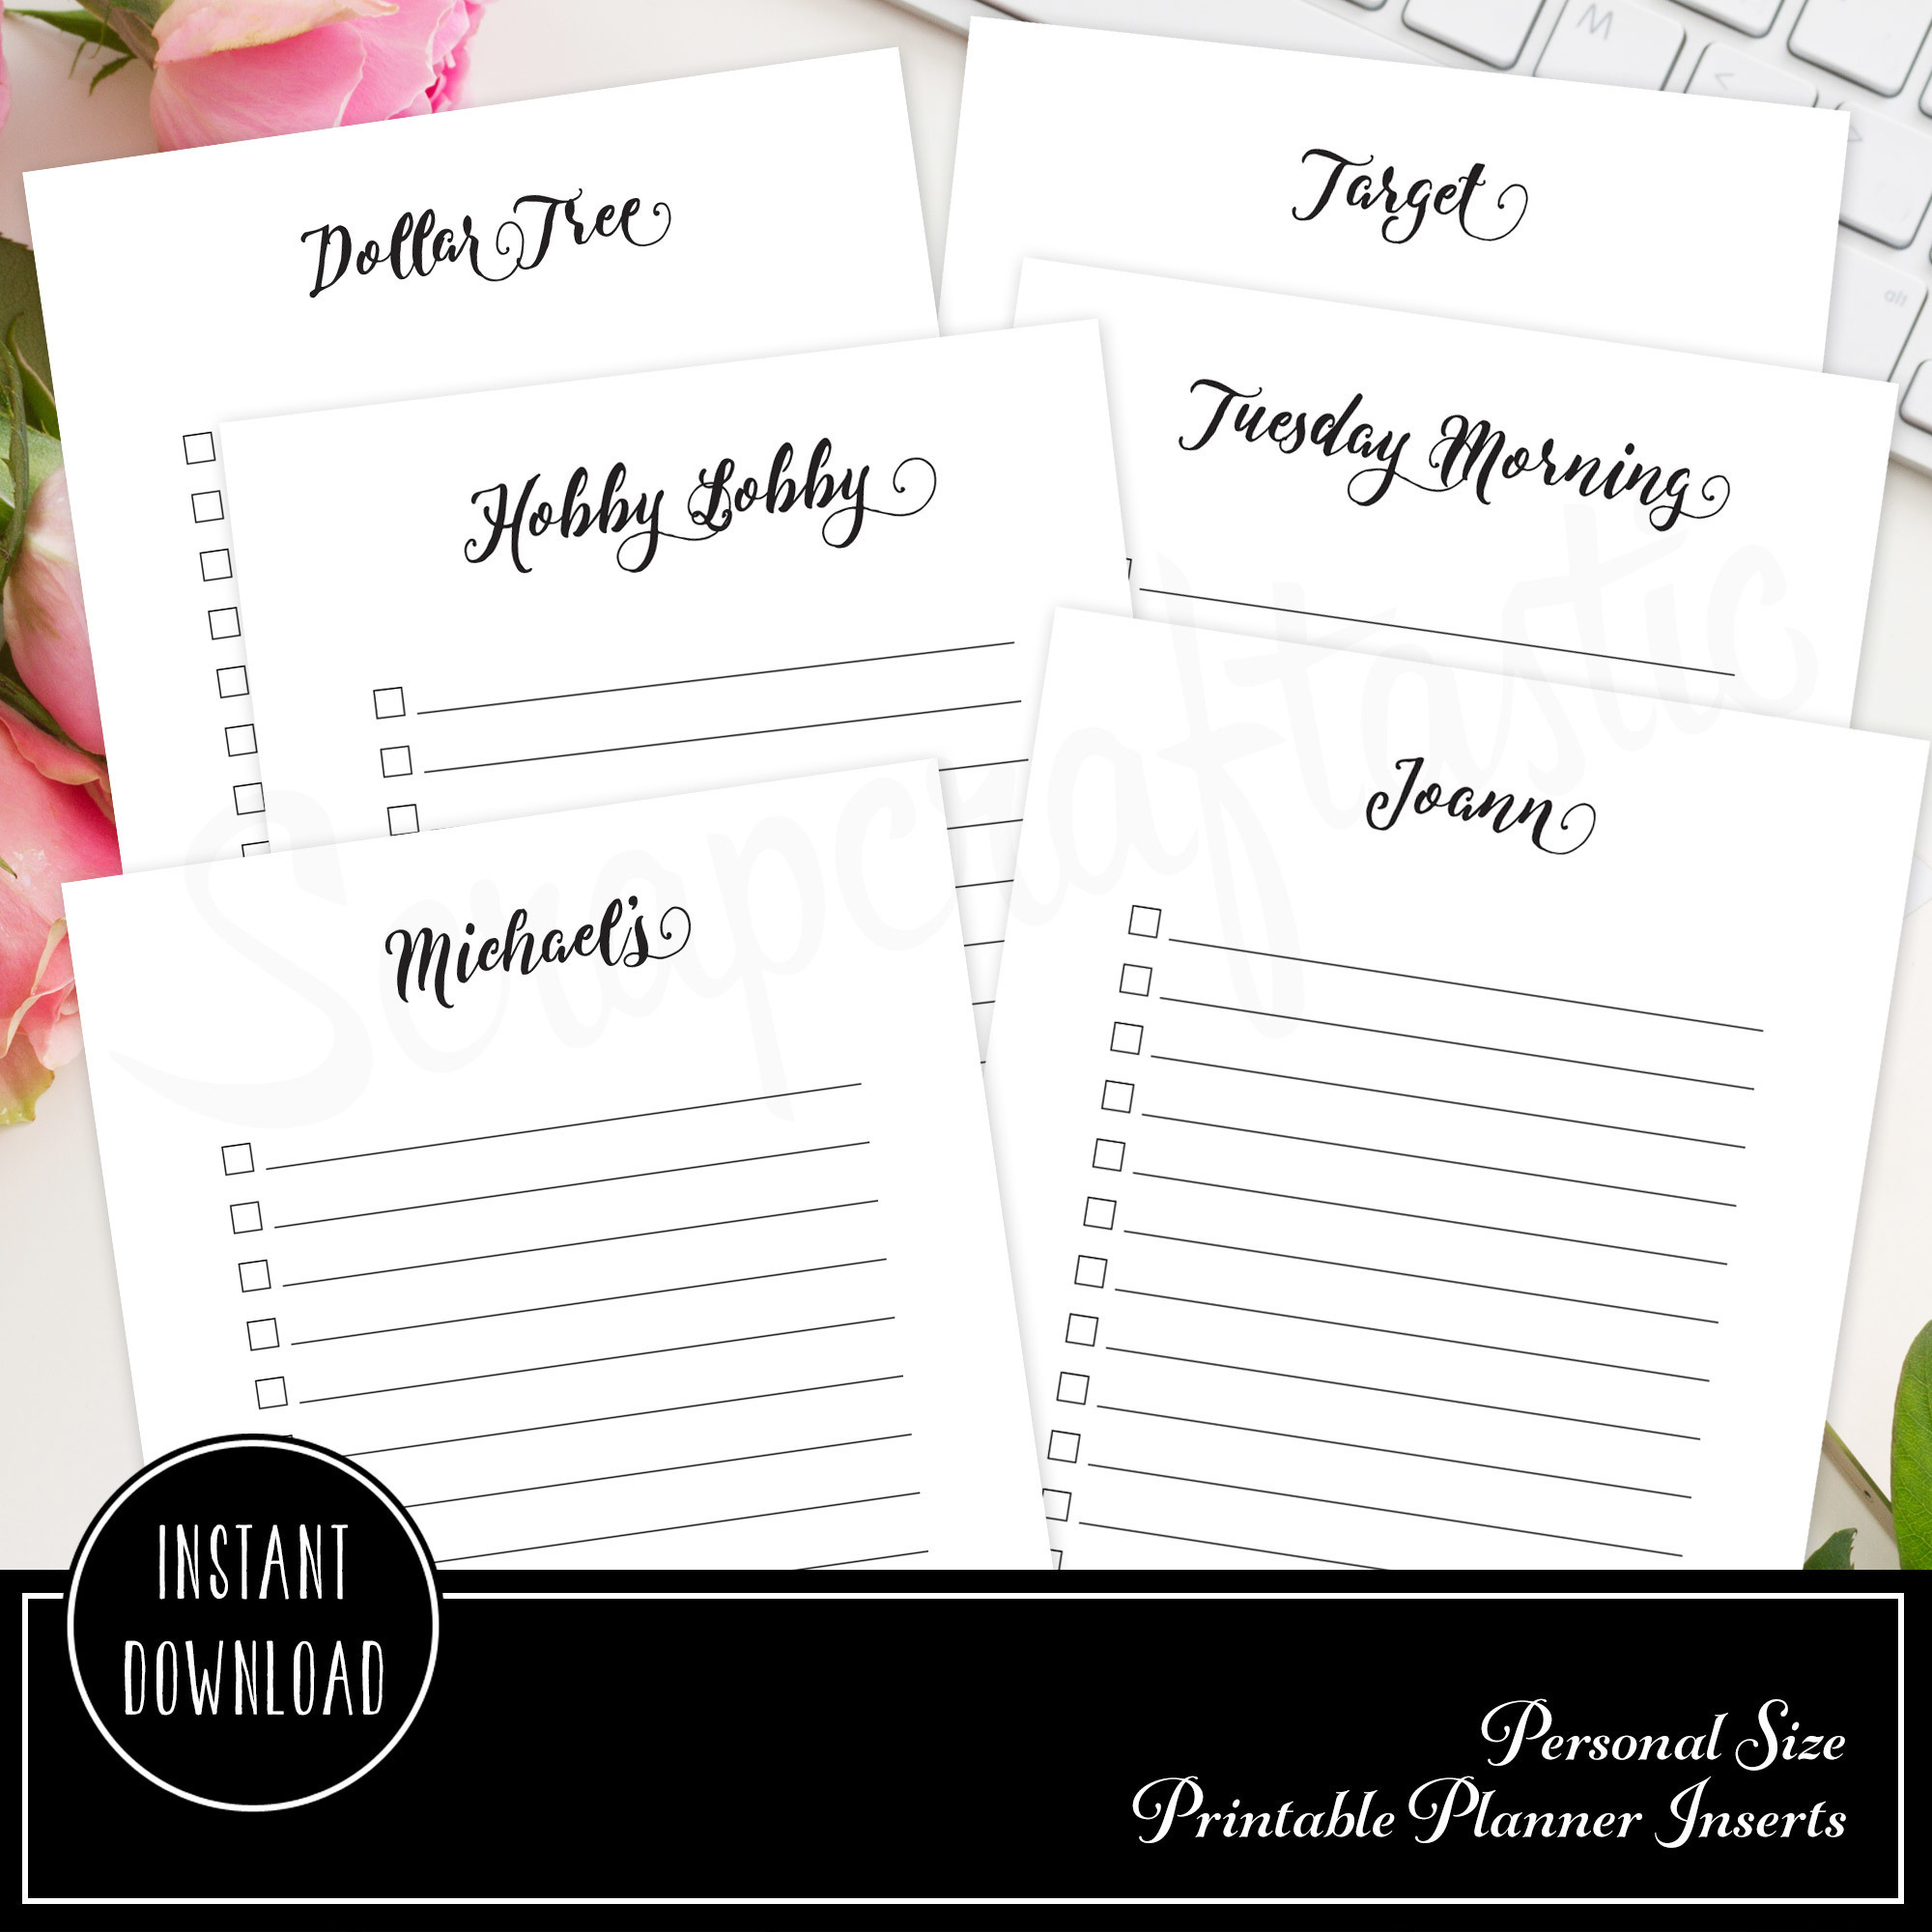 Shopping Check List Personal Size Printable Planner Inserts 00200